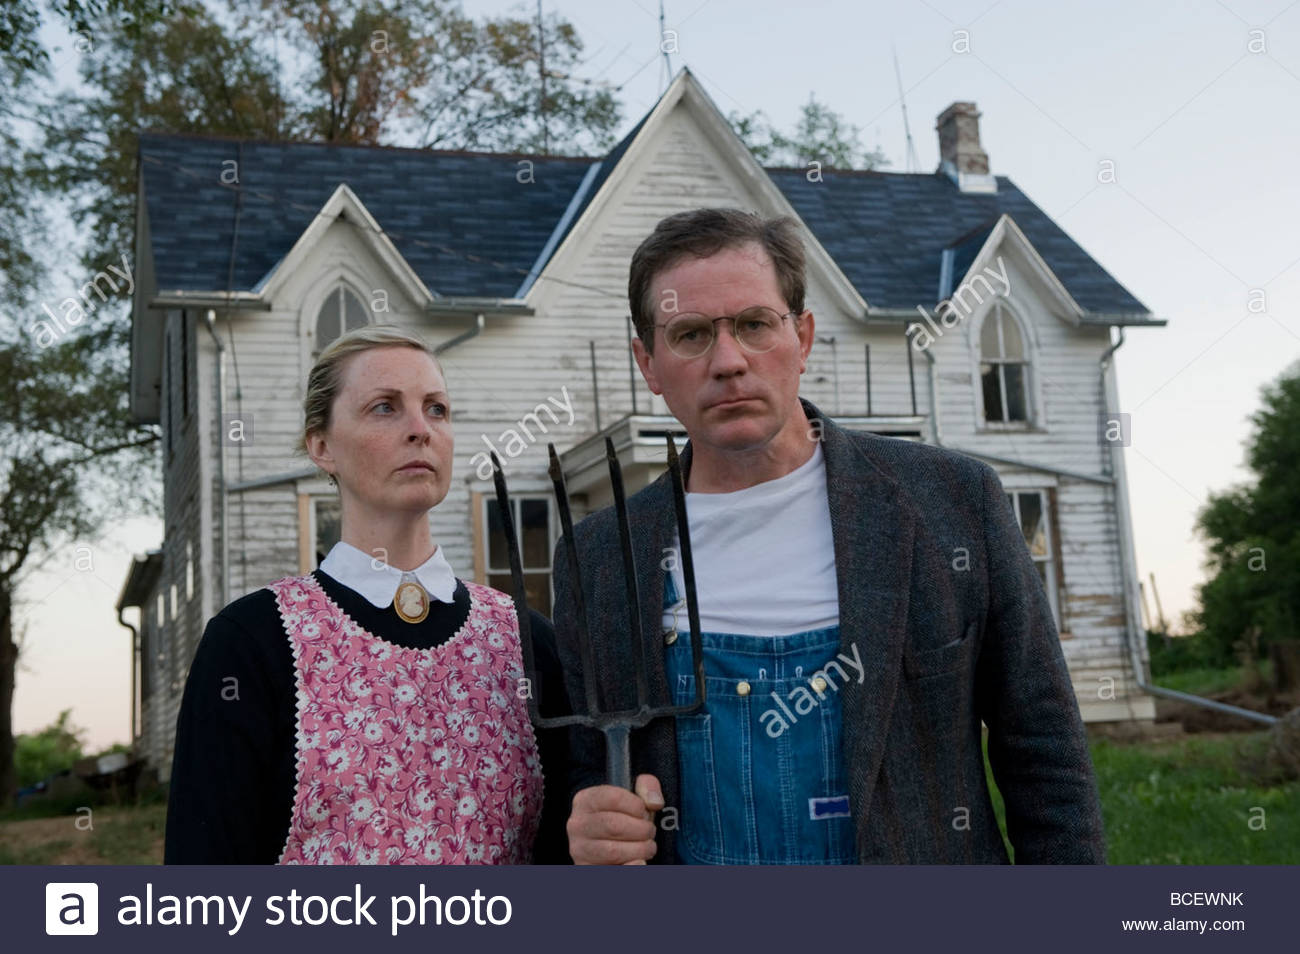 A Husband And Wife Imitate The Painting American Gothic